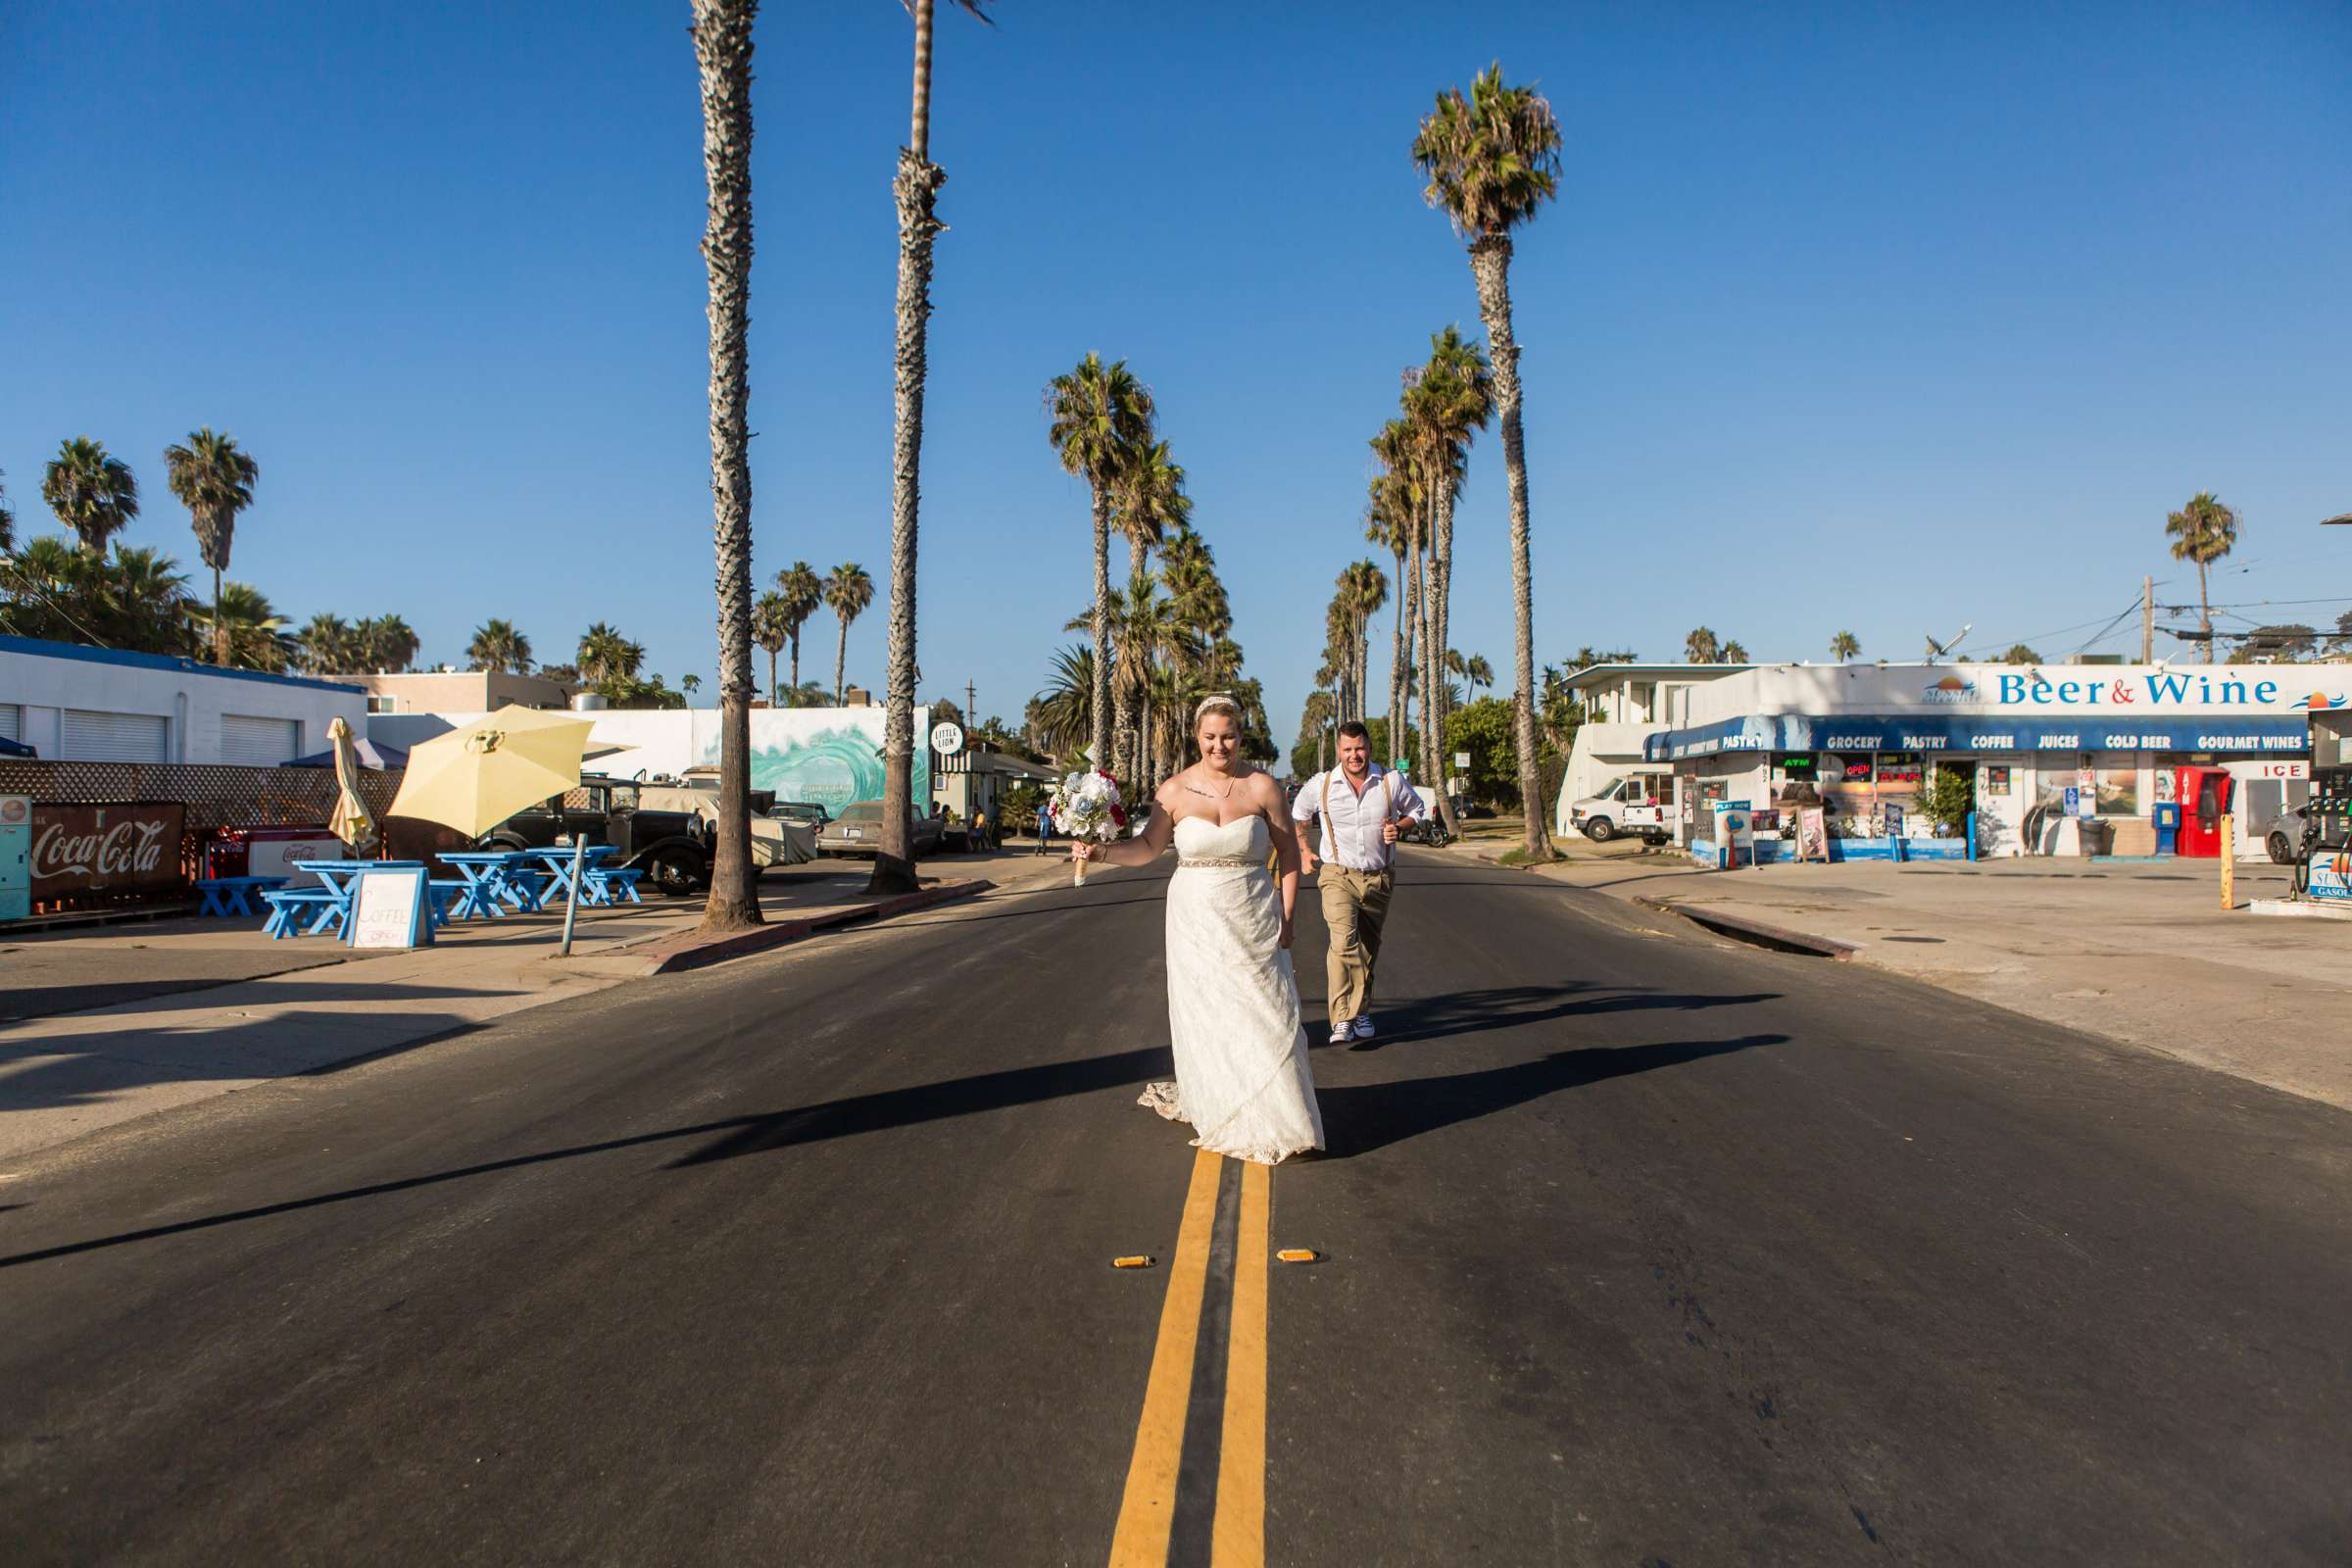 The Inn at Sunset Cliffs Wedding, Melinda and Benjamin Wedding Photo #3 by True Photography